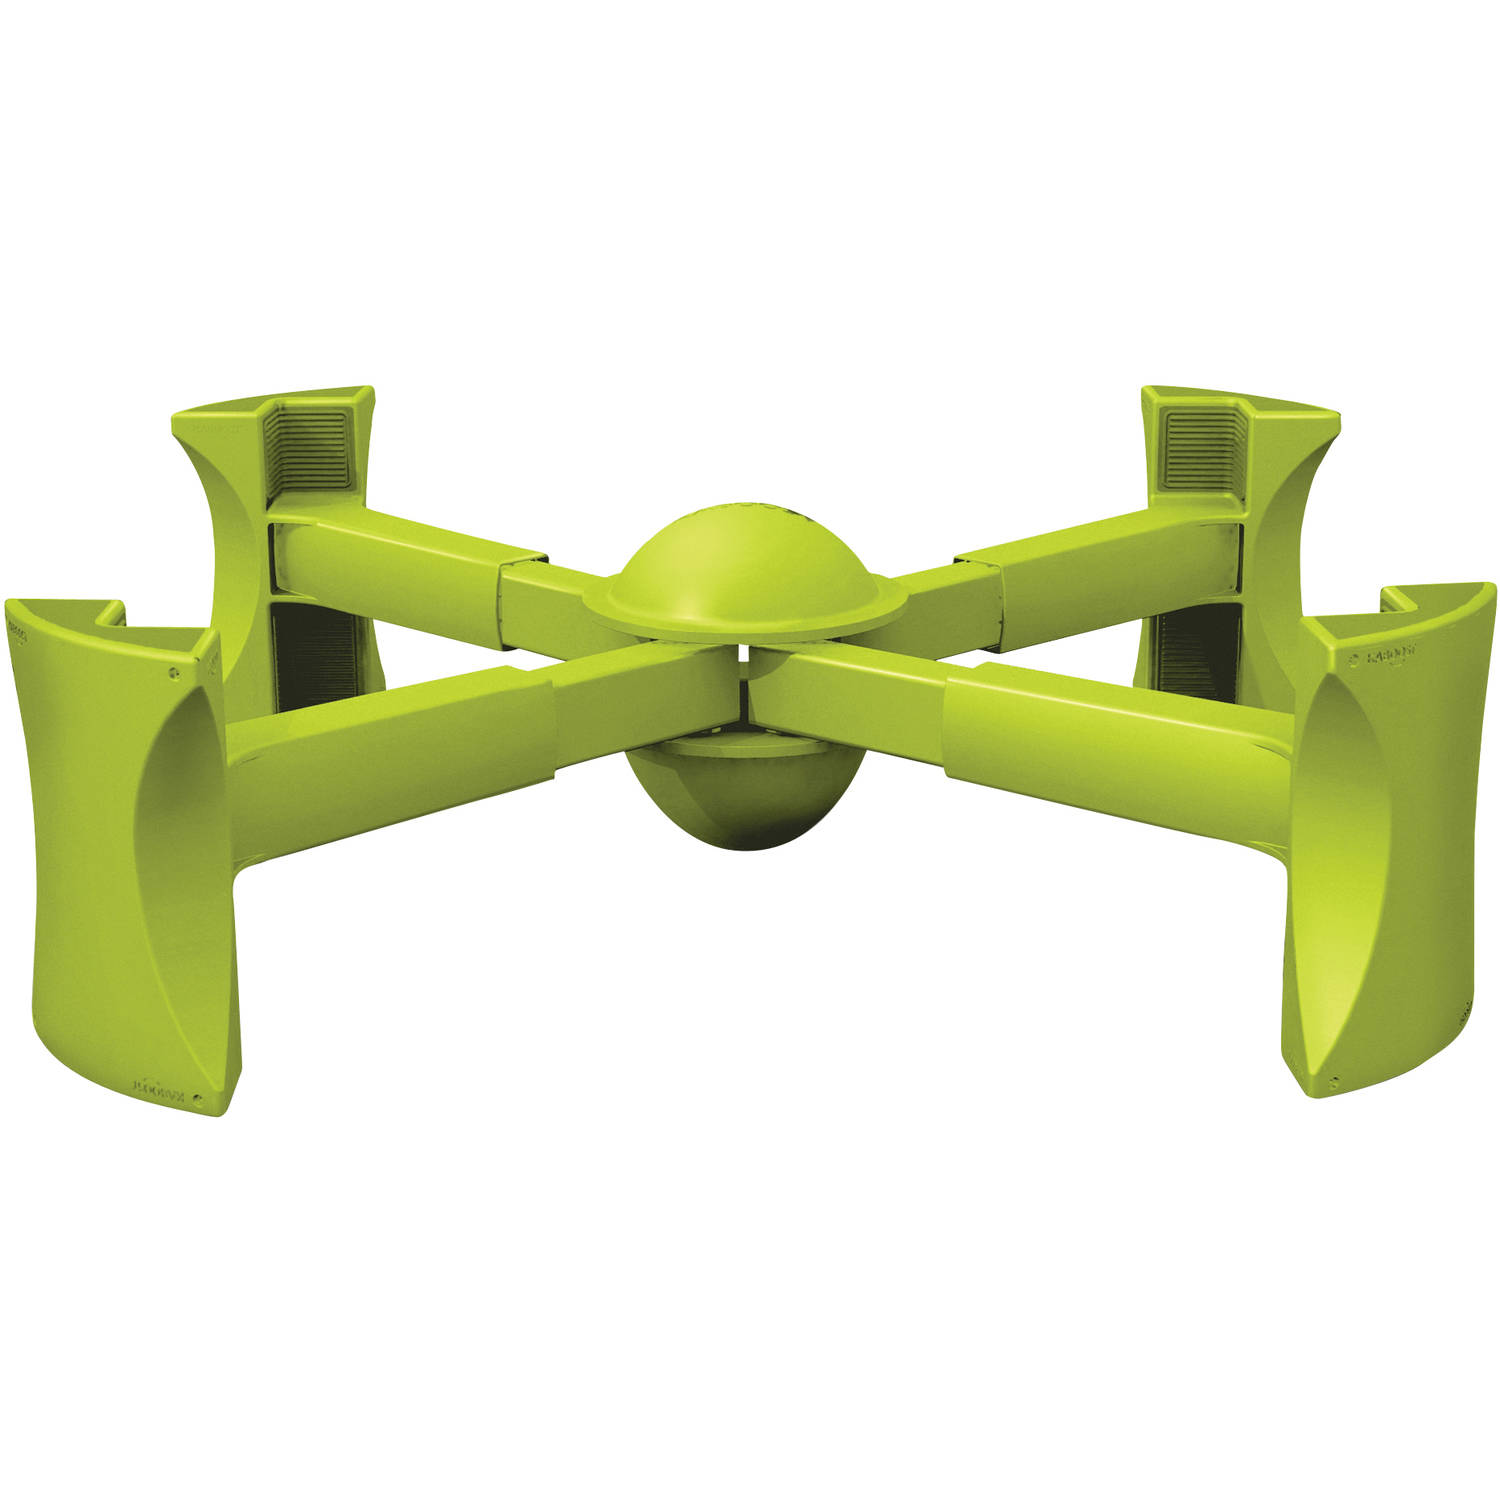 KABOOST Portable Chair Booster Goes Under the Chair Green